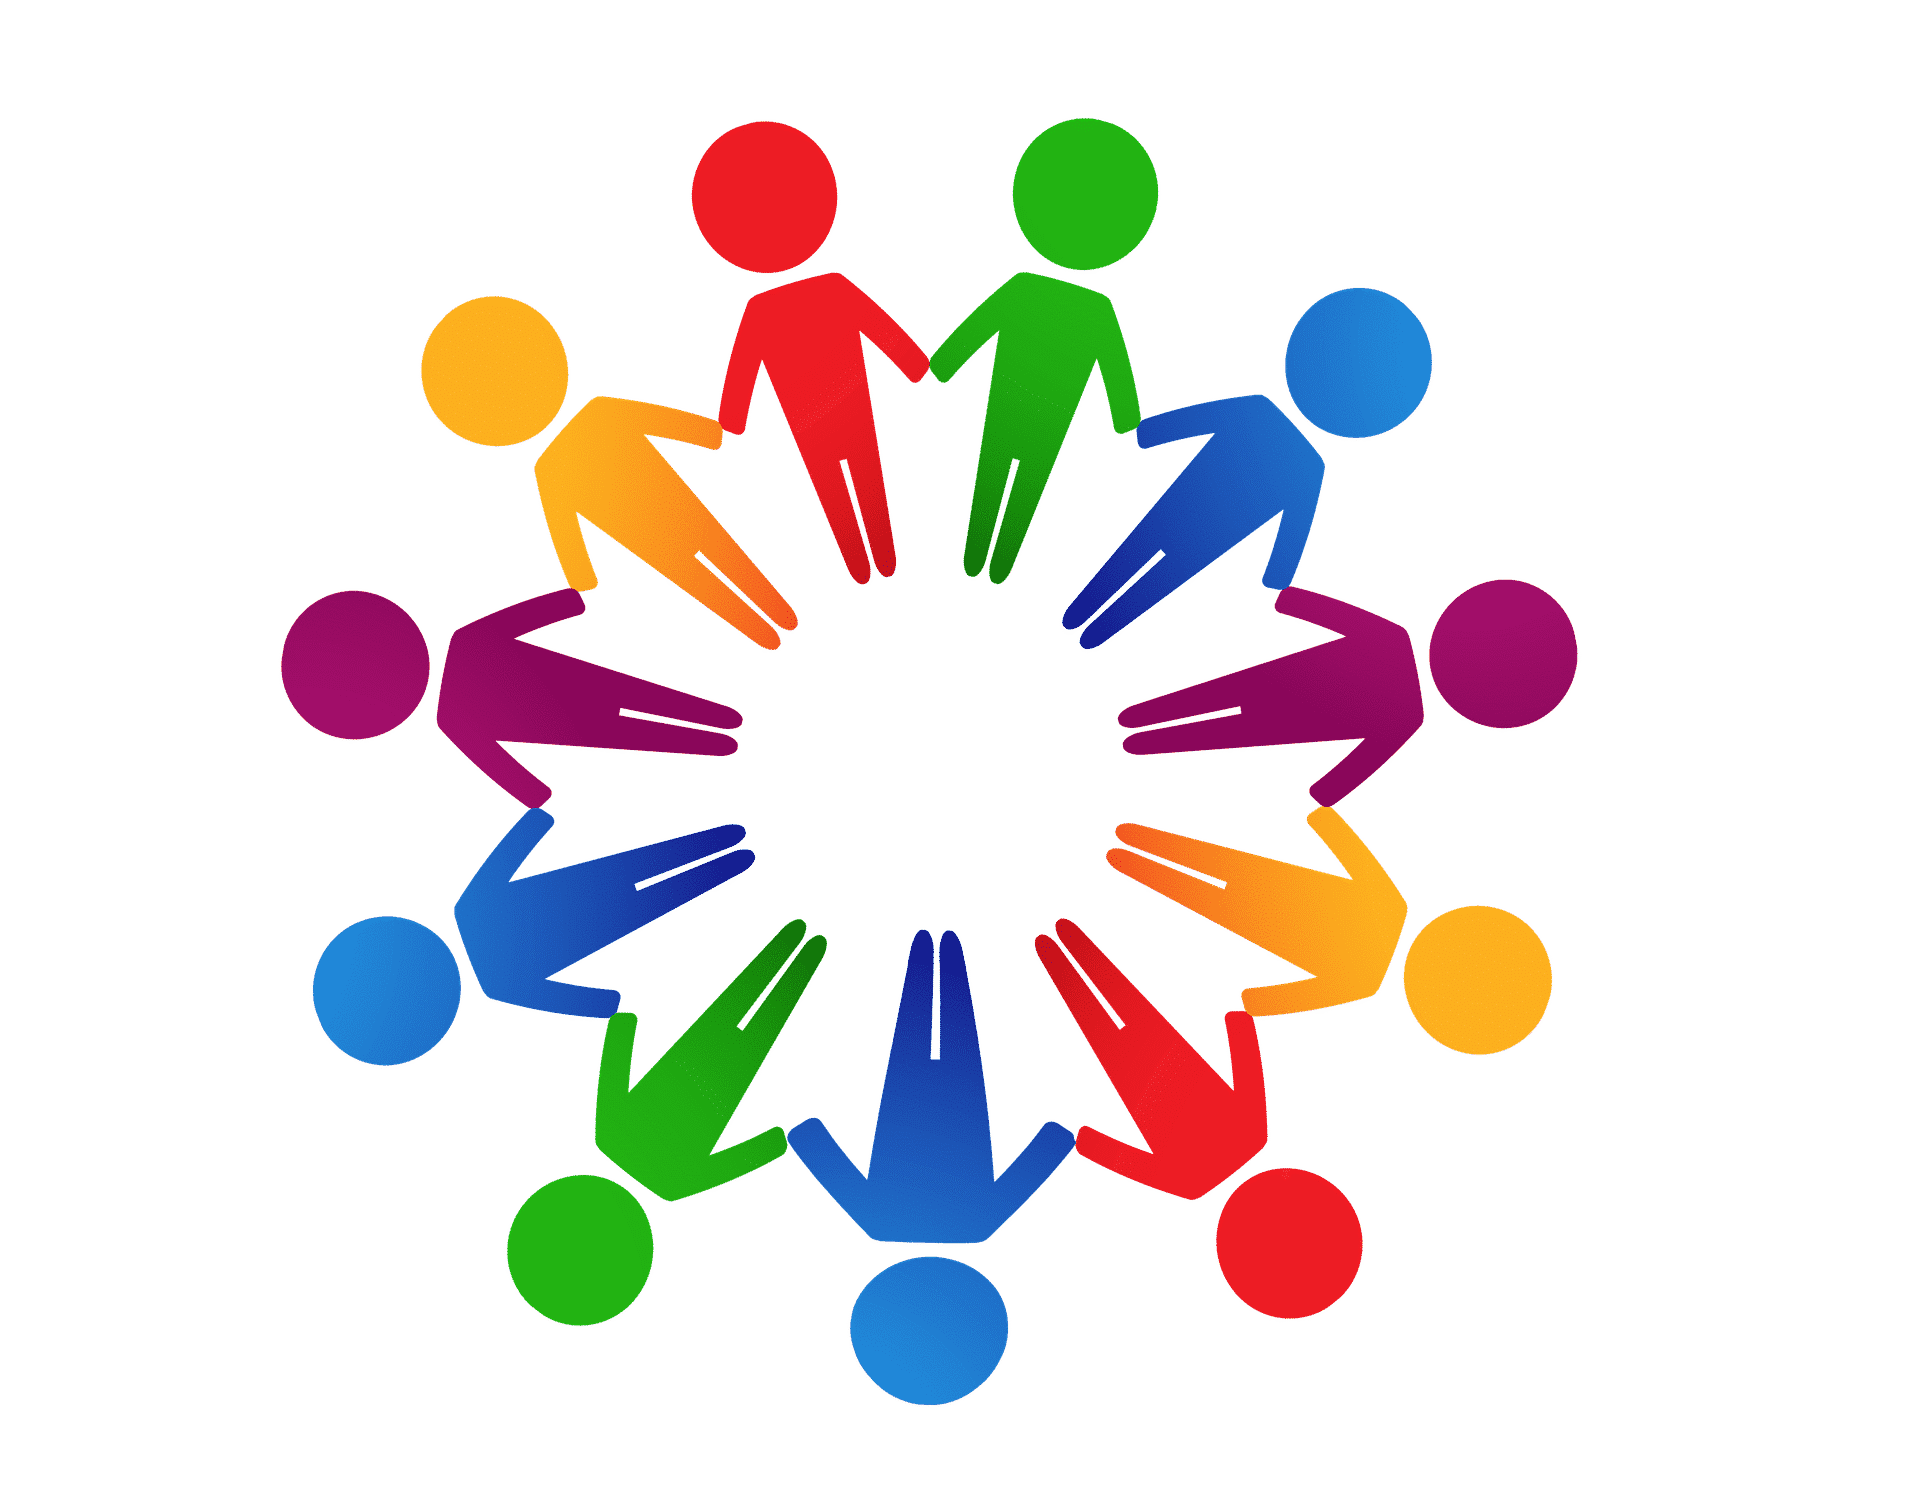 picture of colourful human figures in circle holding hands